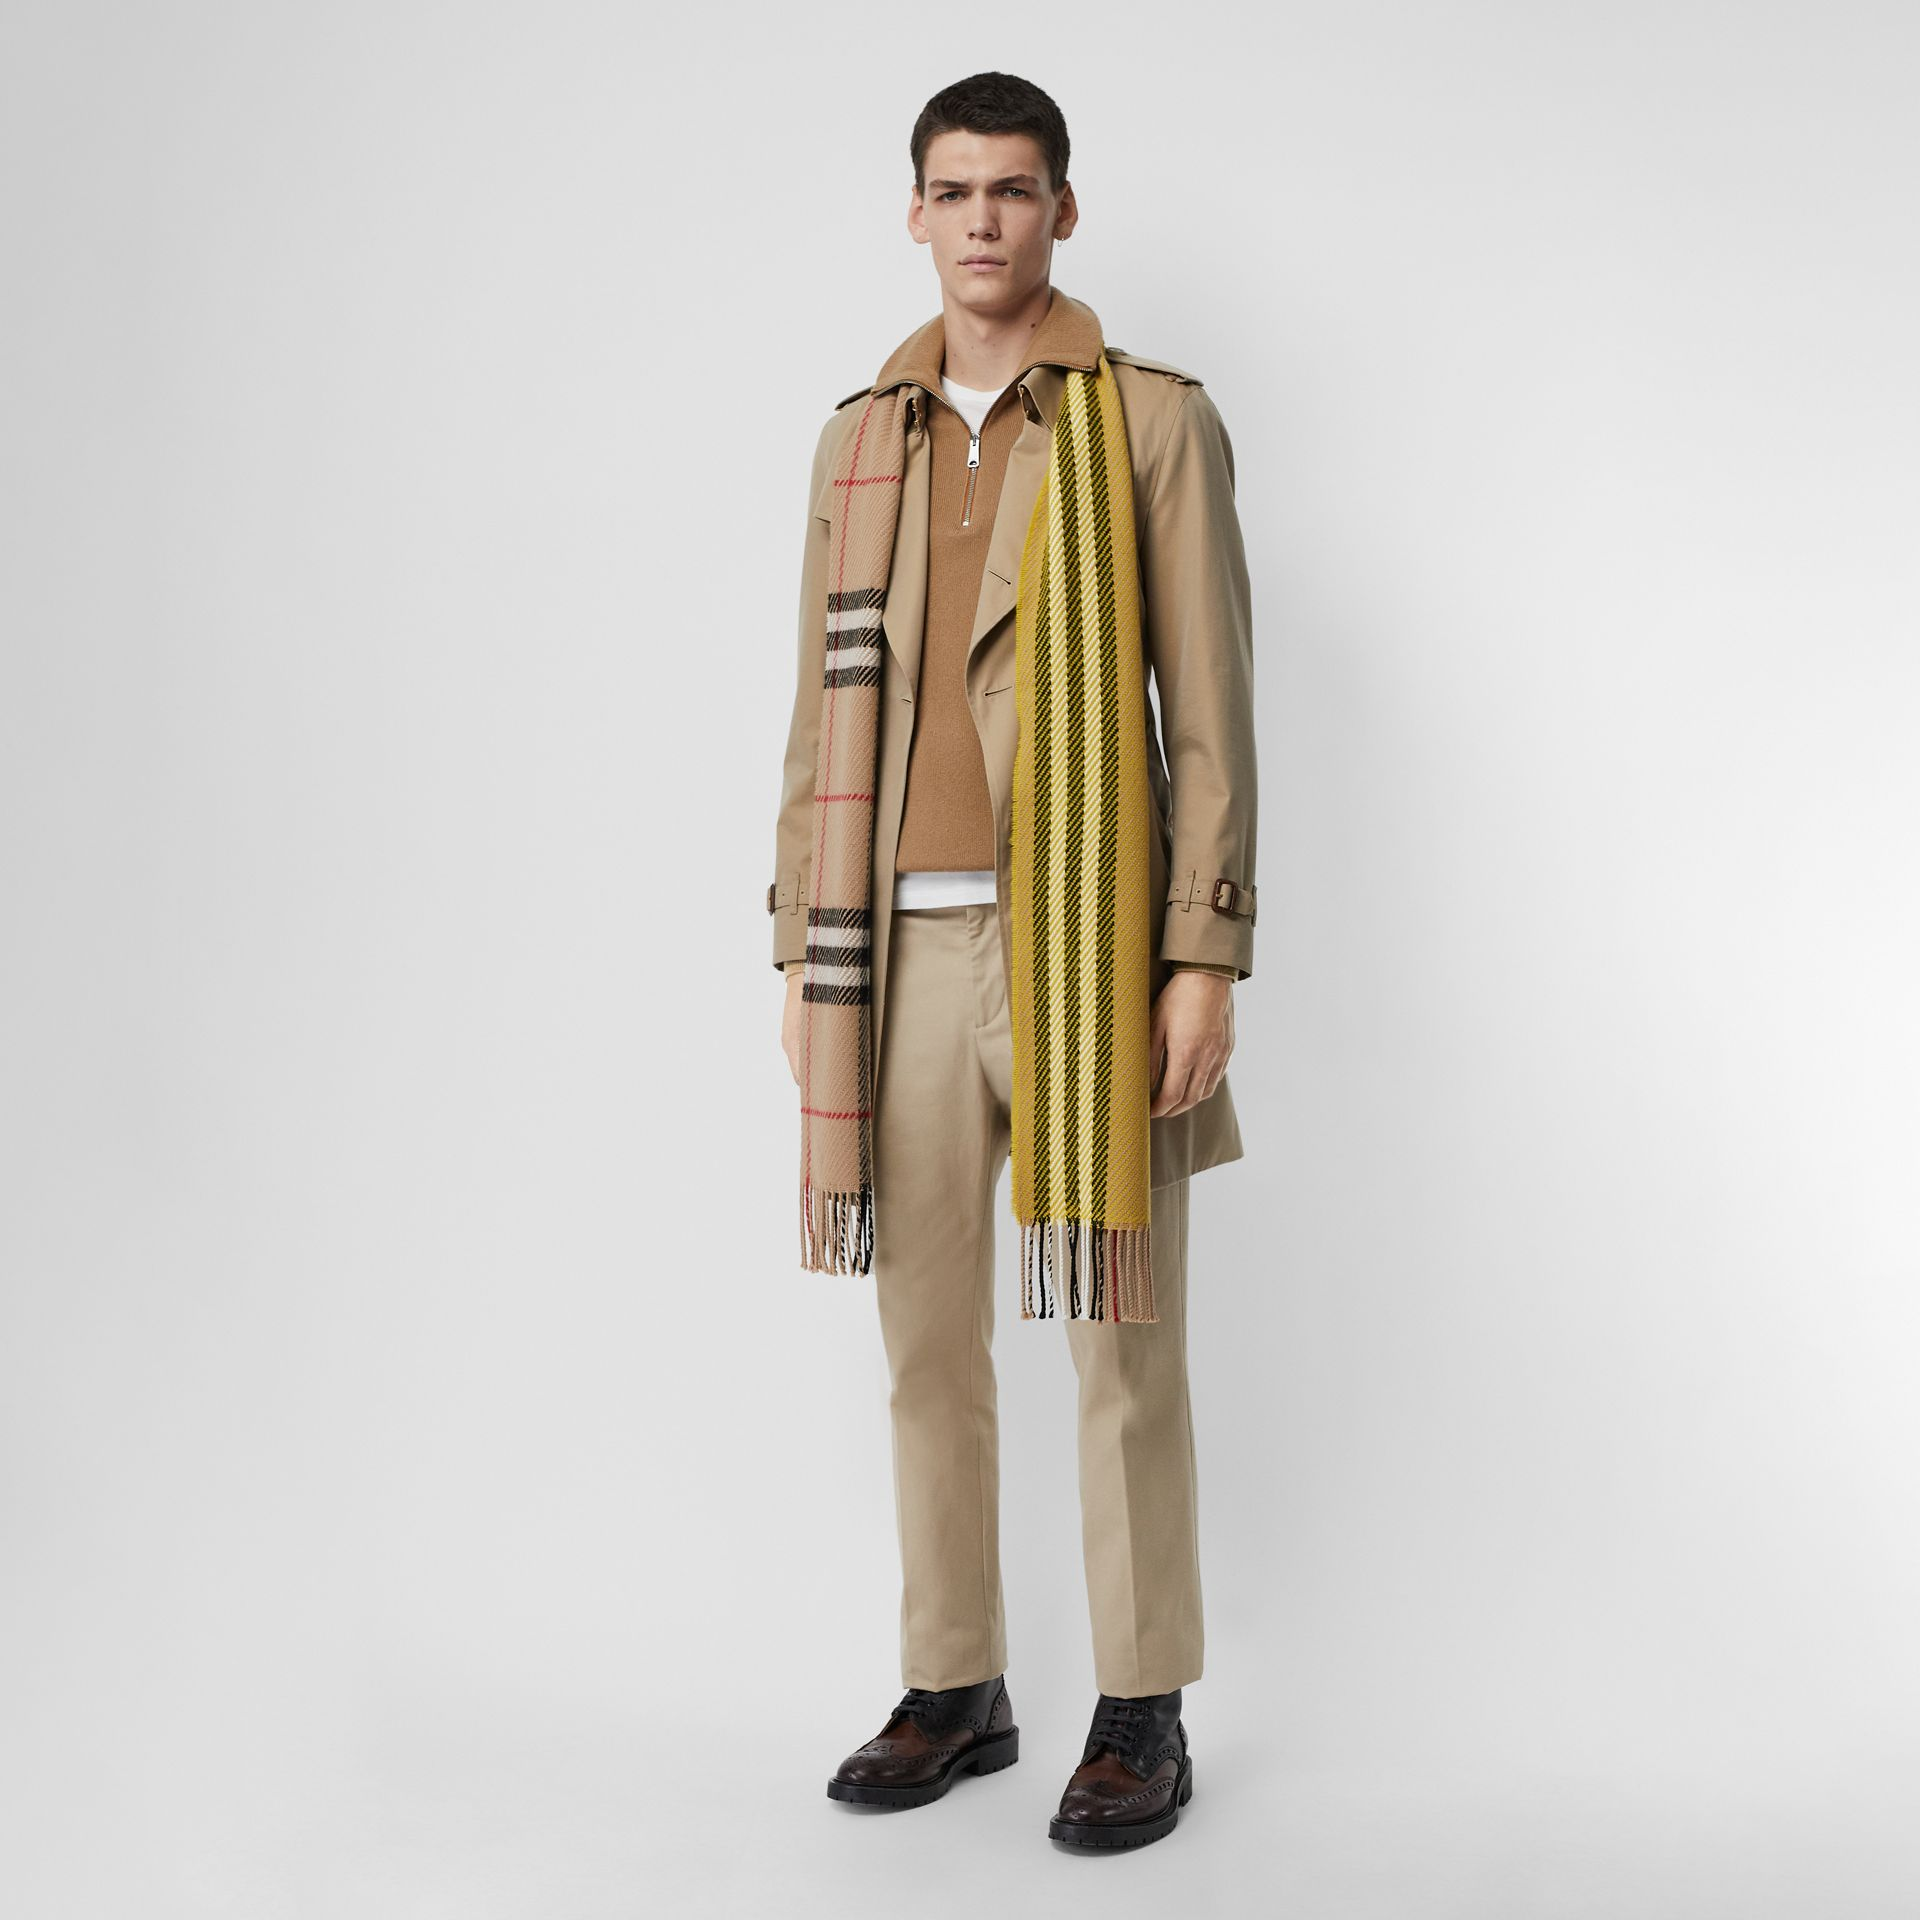 Rib Knit Cashmere Half-zip Sweater in Camel - Men | Burberry United States - gallery image 4